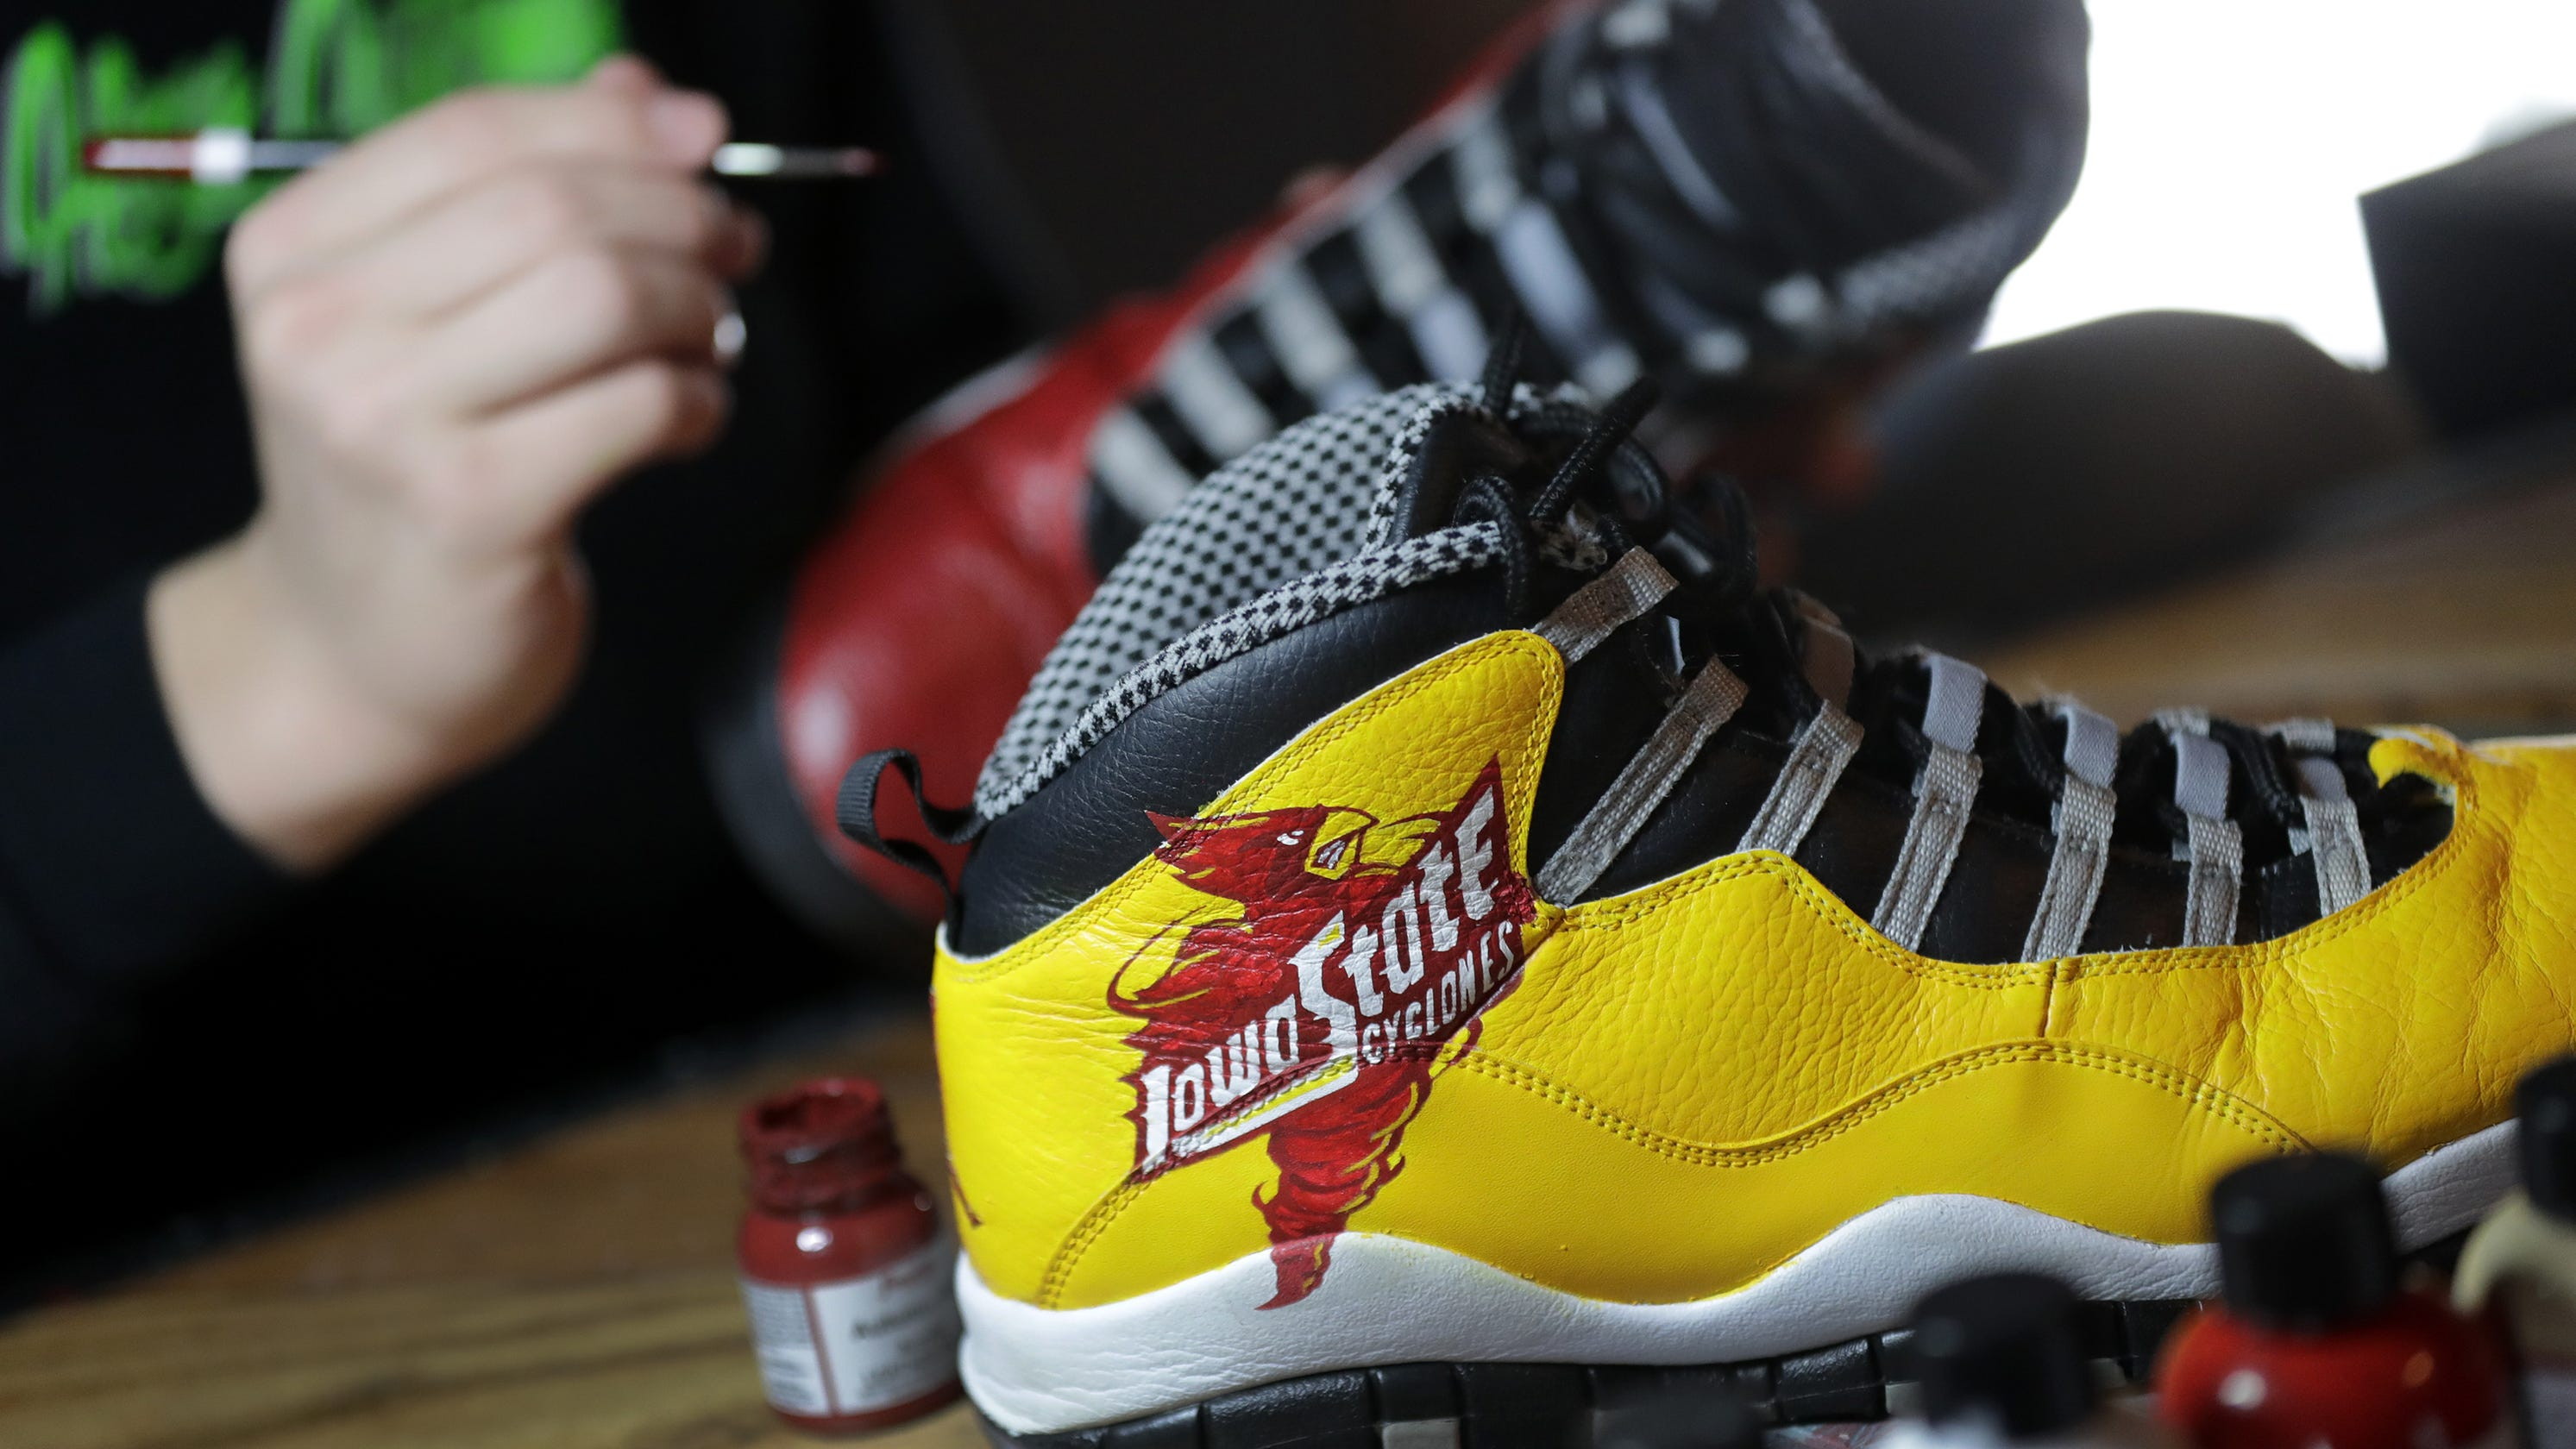 129f8821b78 After learning from YouTube, Omro teen has customized sneakers for NCAA,  NBA players